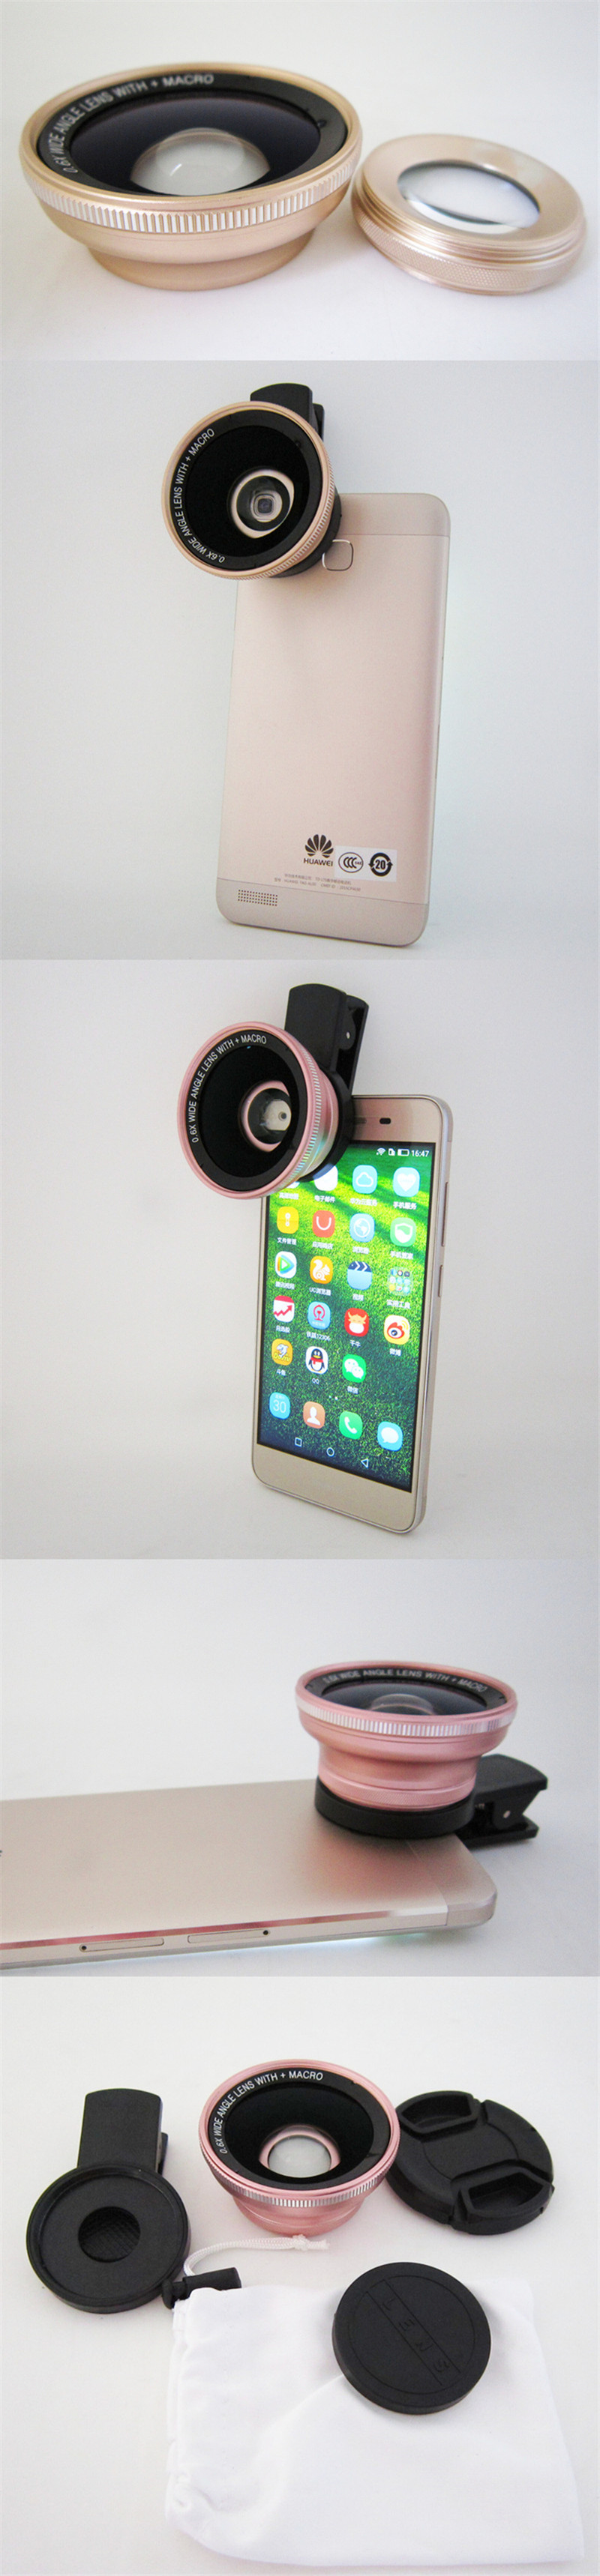 DR-fish 0.6X Wide Angle Phone Lens 15 Macro lenses For iPhone 7 6S Plus HD Clip 37mm For Smartphone Cell phone camera Lens 2